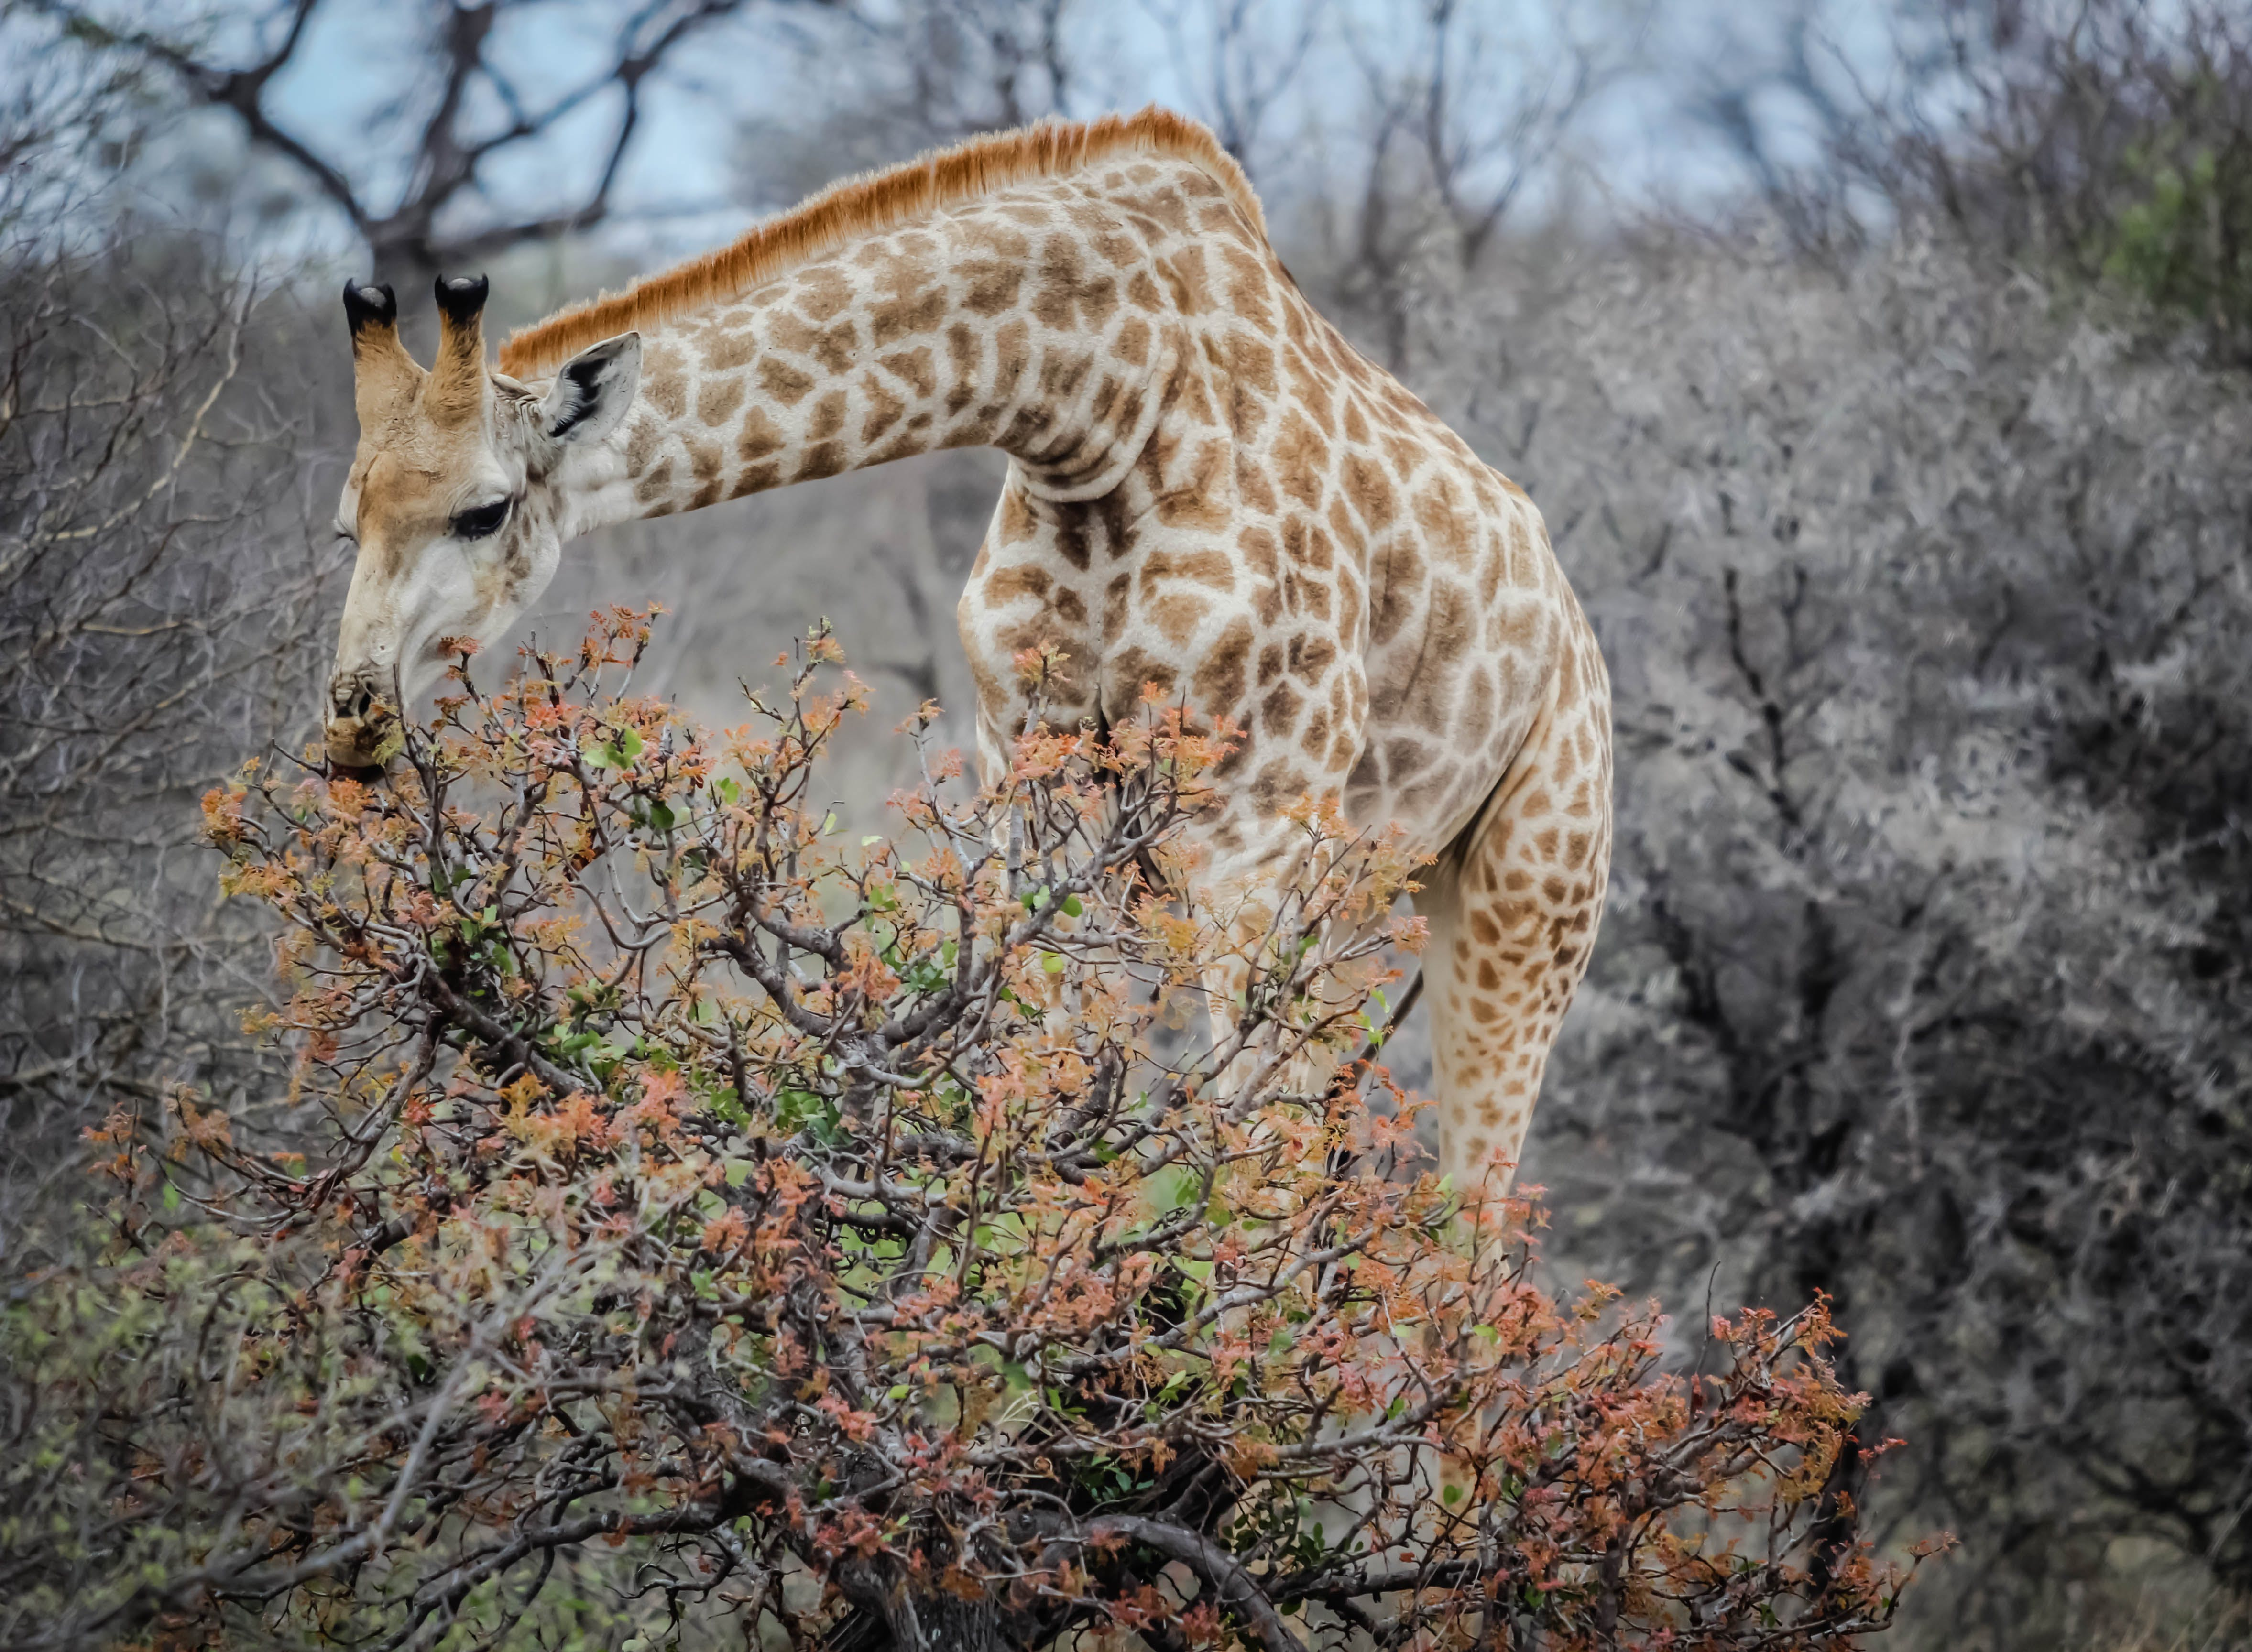 Close-up Photography of Giraffe Grazing